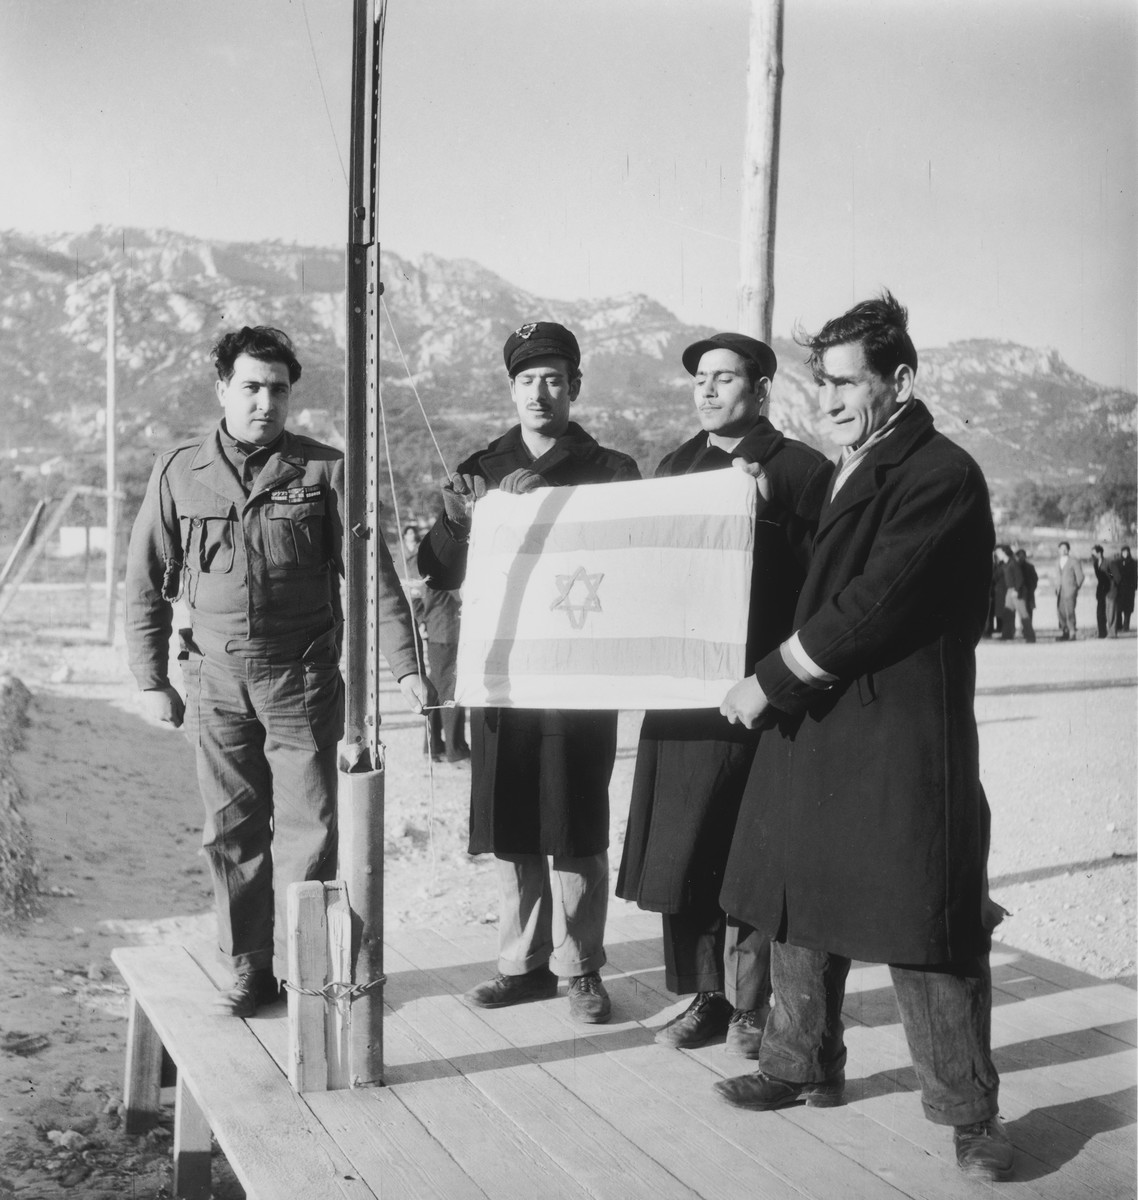 Group portrait of three Jewish displaced persons holding an Israeli flag prior to their departure for Palestine while a soldier looks on.